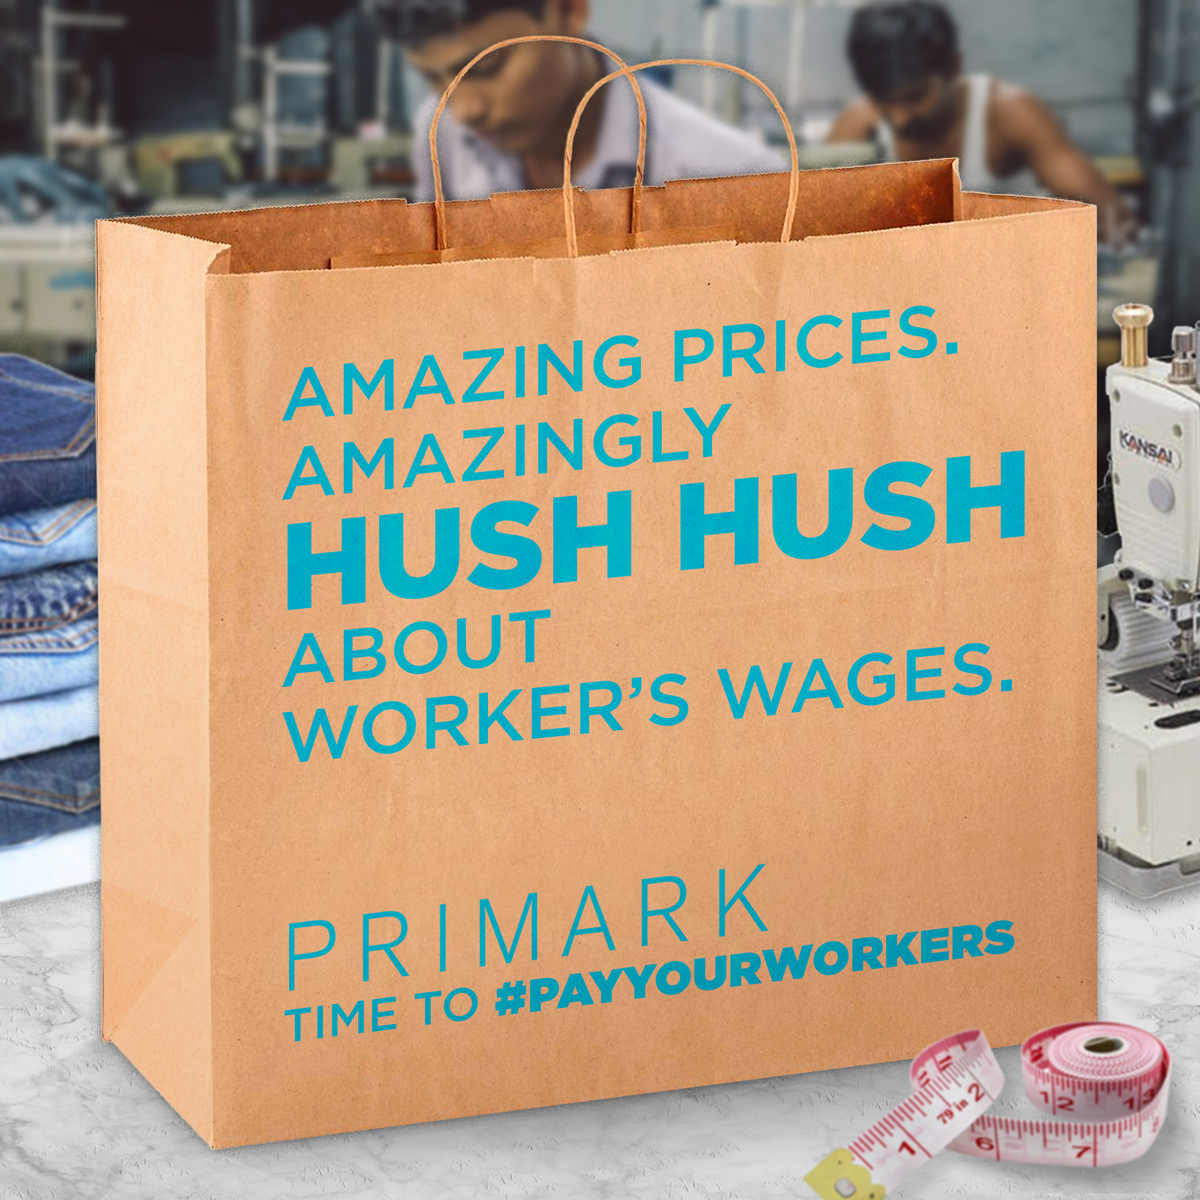 PRIMARK: Have you paid your workers?